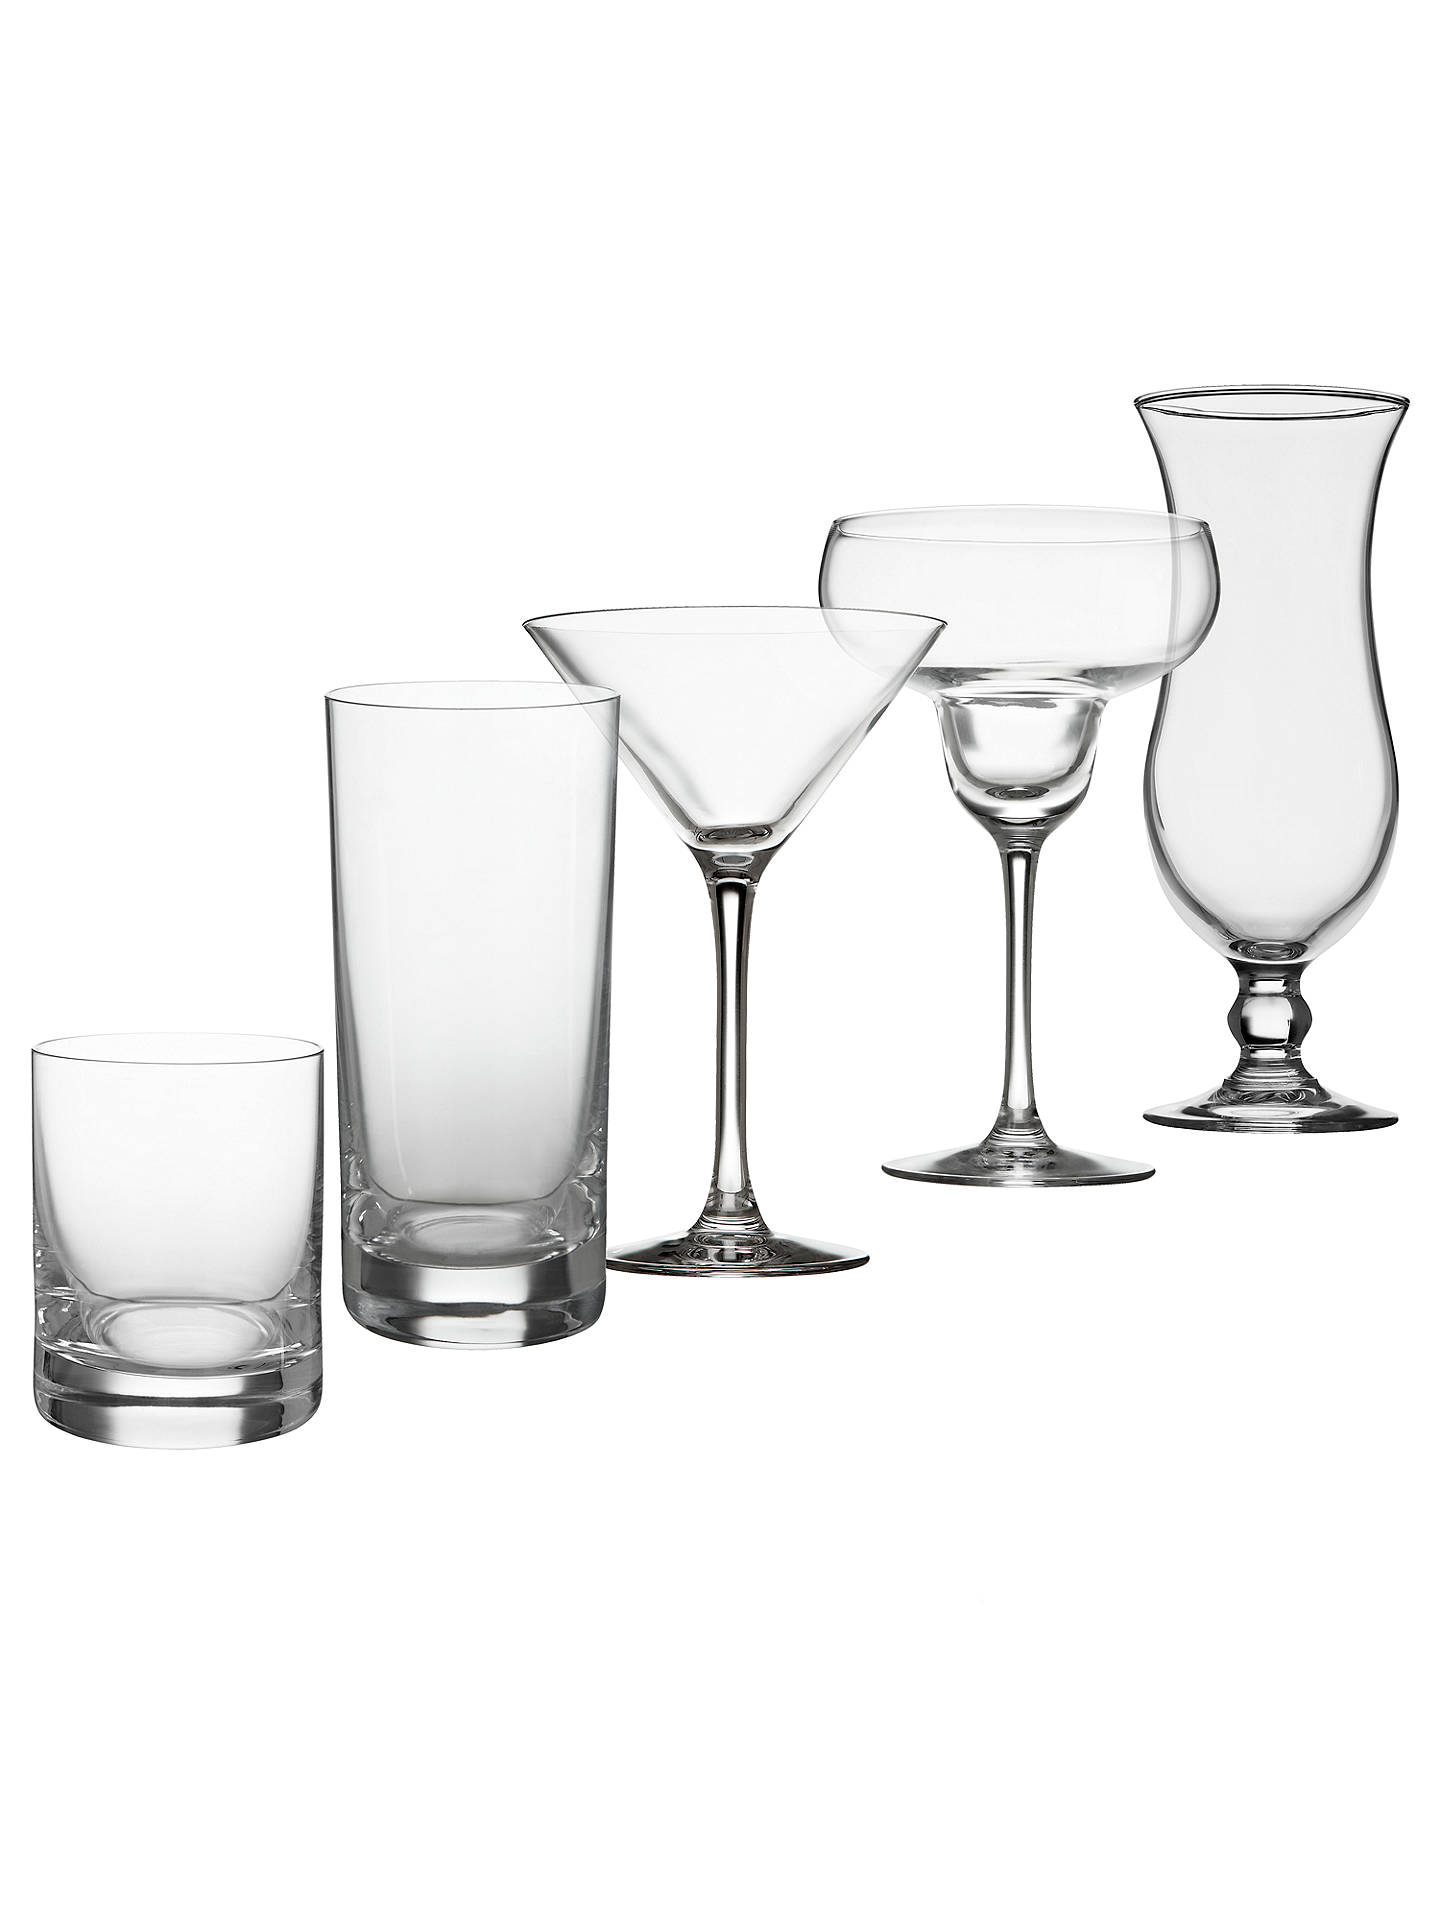 Buy John Lewis & Partners Cocktail Margarita Glasses, Set of 4 Online at johnlewis.com